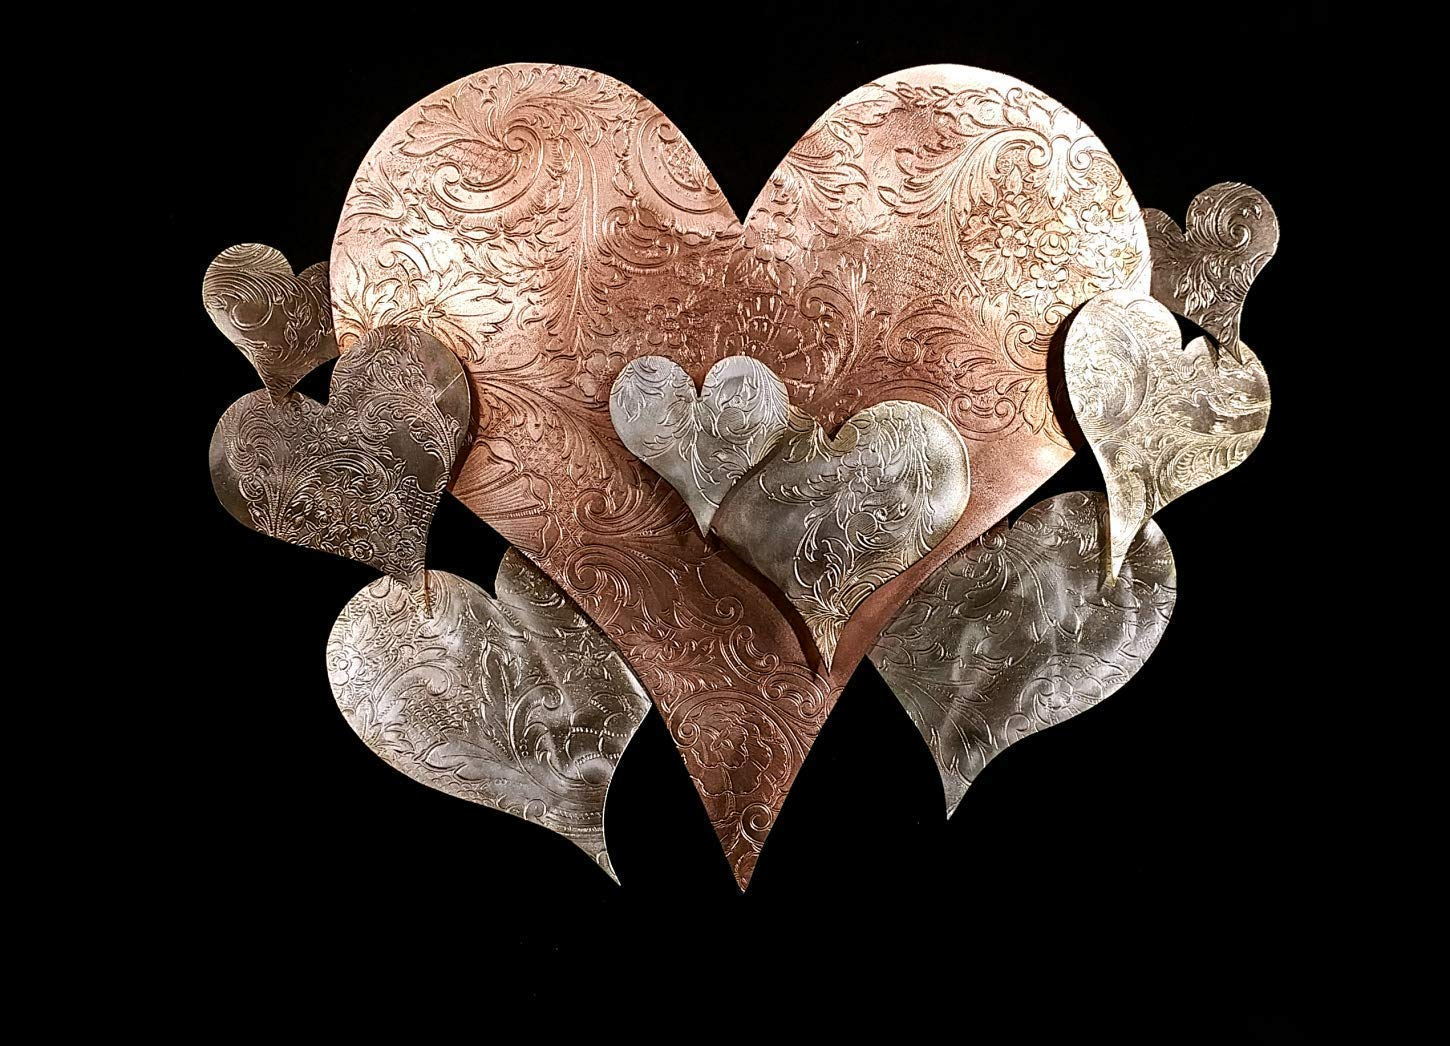 Metal Wall Art Heart Cloud 1575e *SAVE 15 SEE BELOW* Steampunk Industrial Vintage Housewarming Wedding Birthday Valentine's Mother's Day Christma